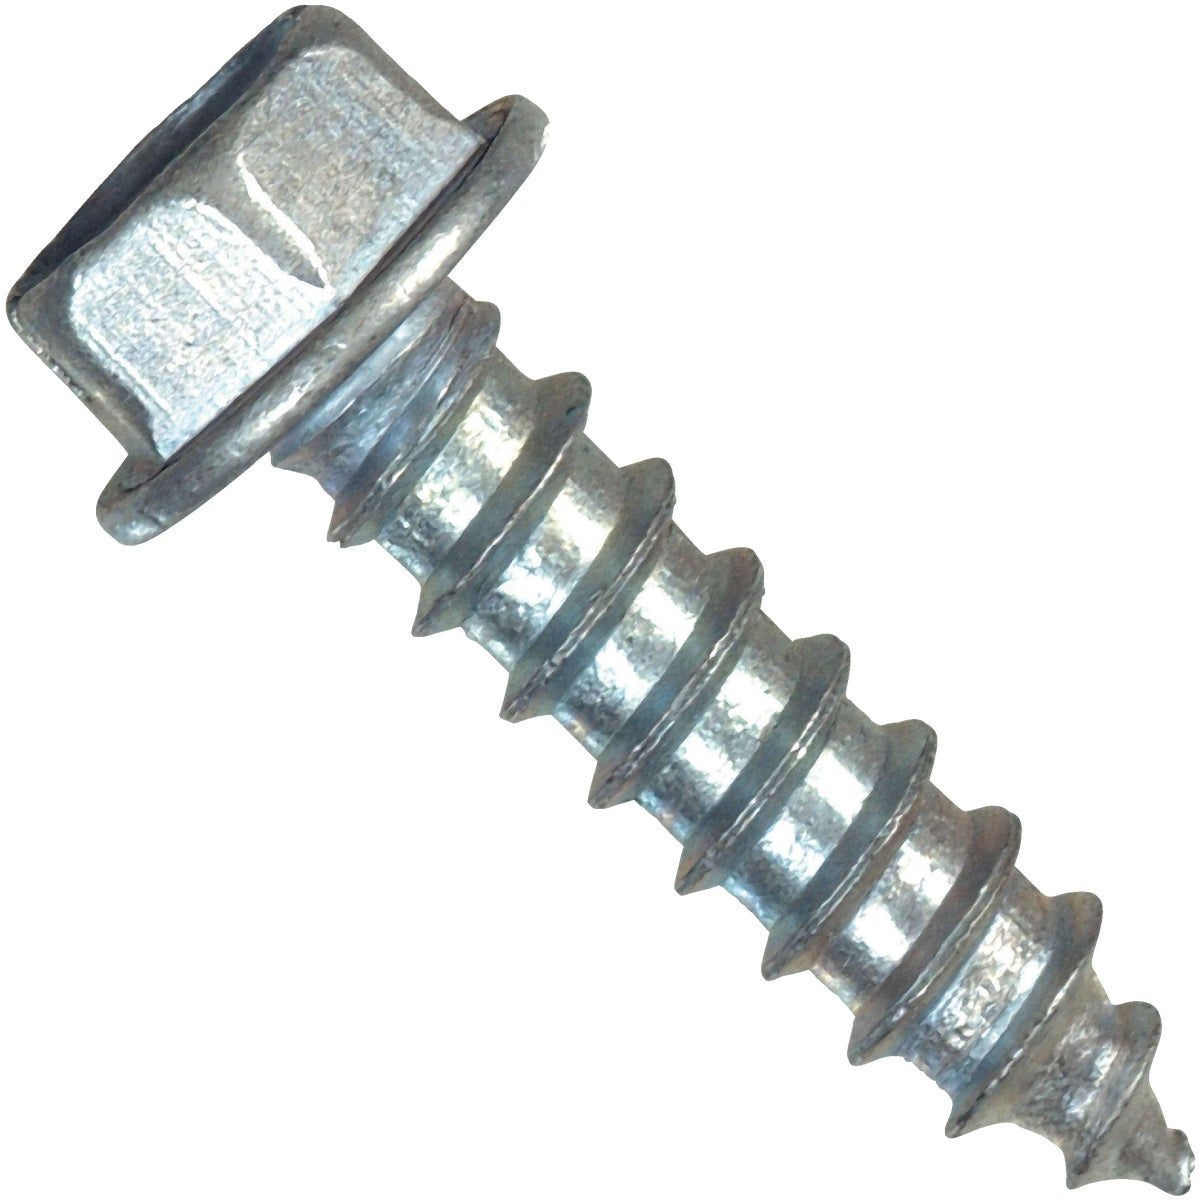 1/4X1 HWH SHT MTL SCREW - 70334 by Hillman Fastener